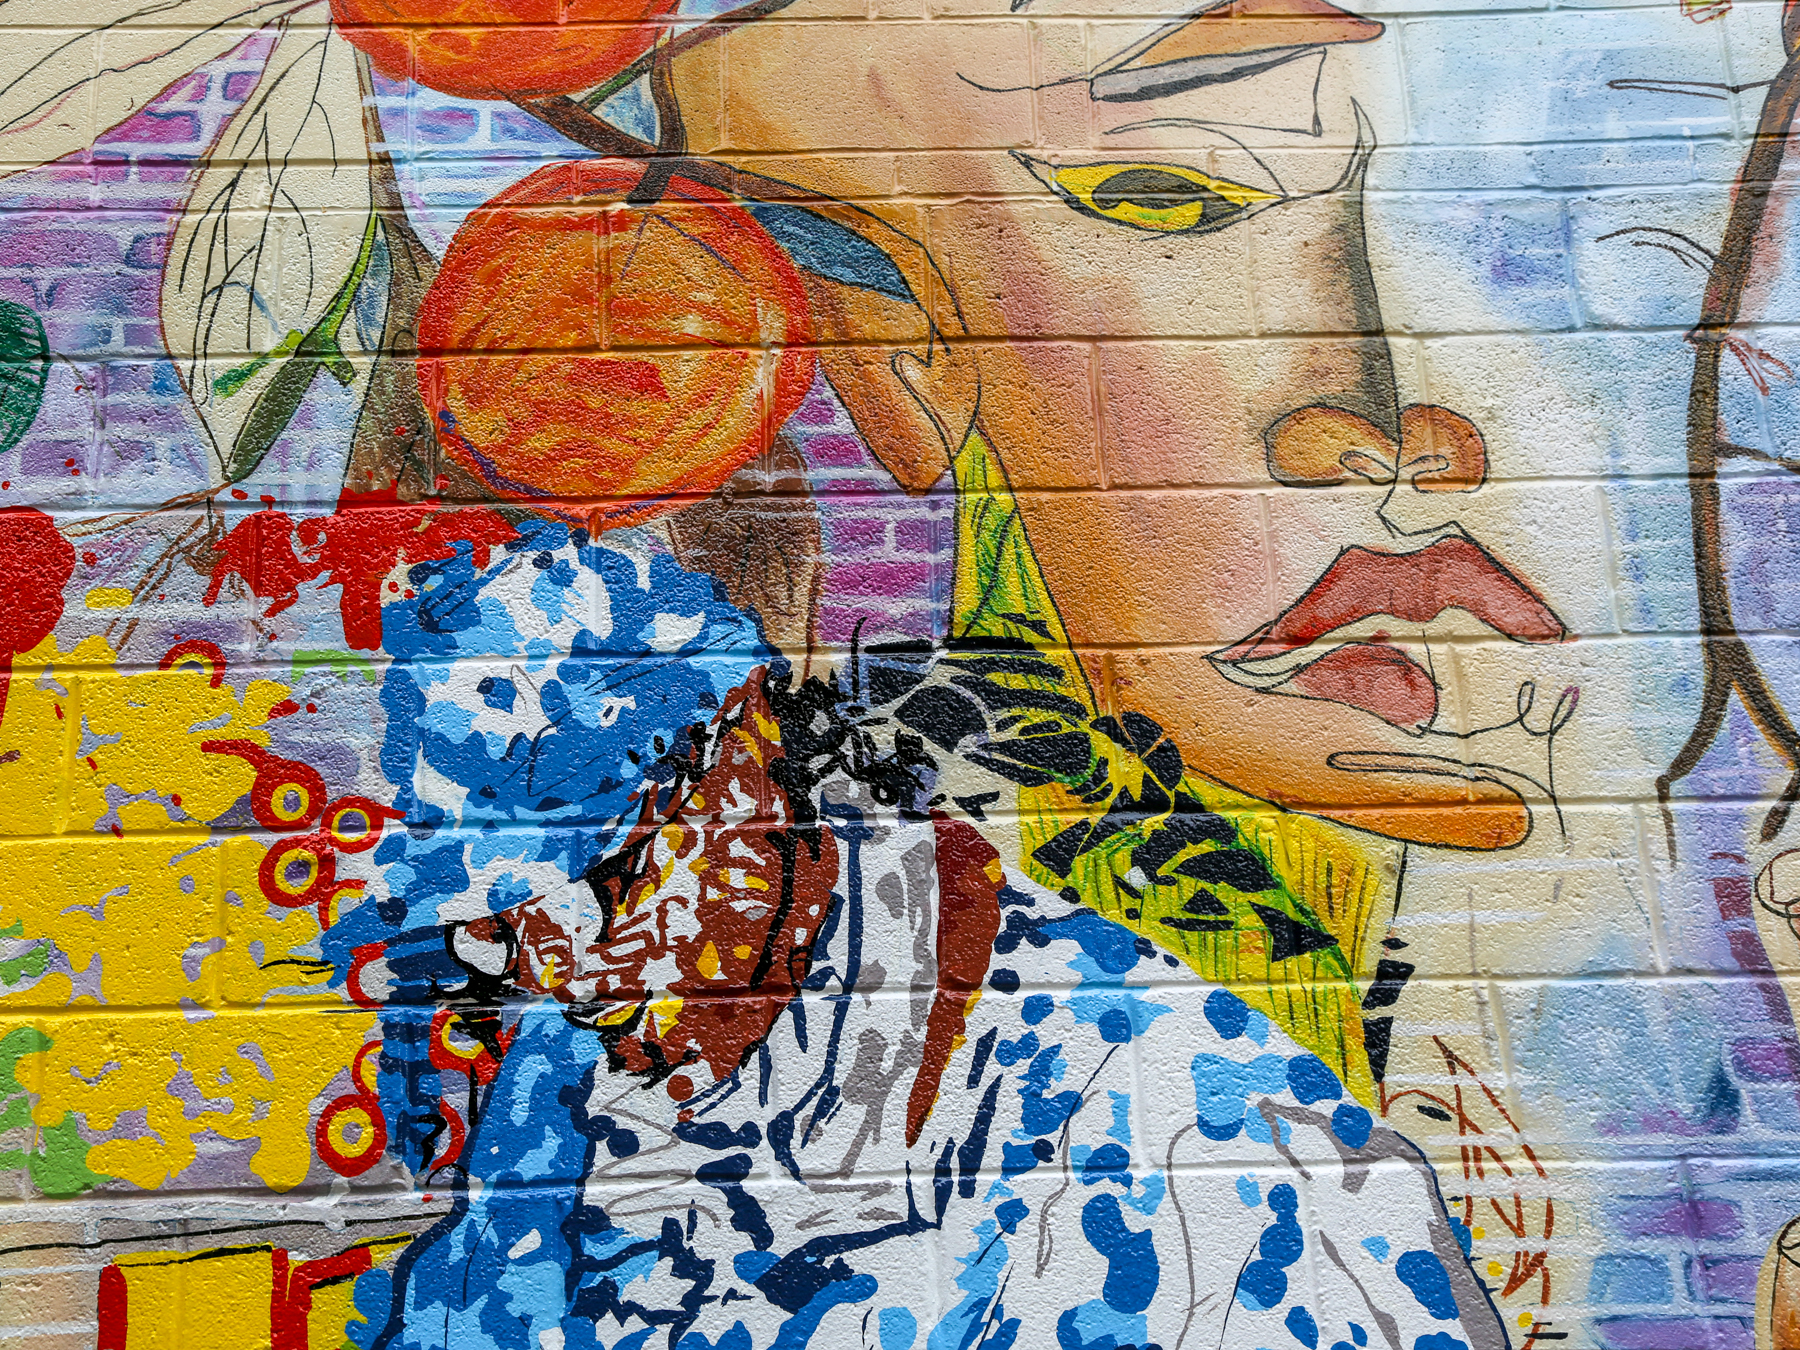 Sunkist_Philly_Mural-0400.jpg